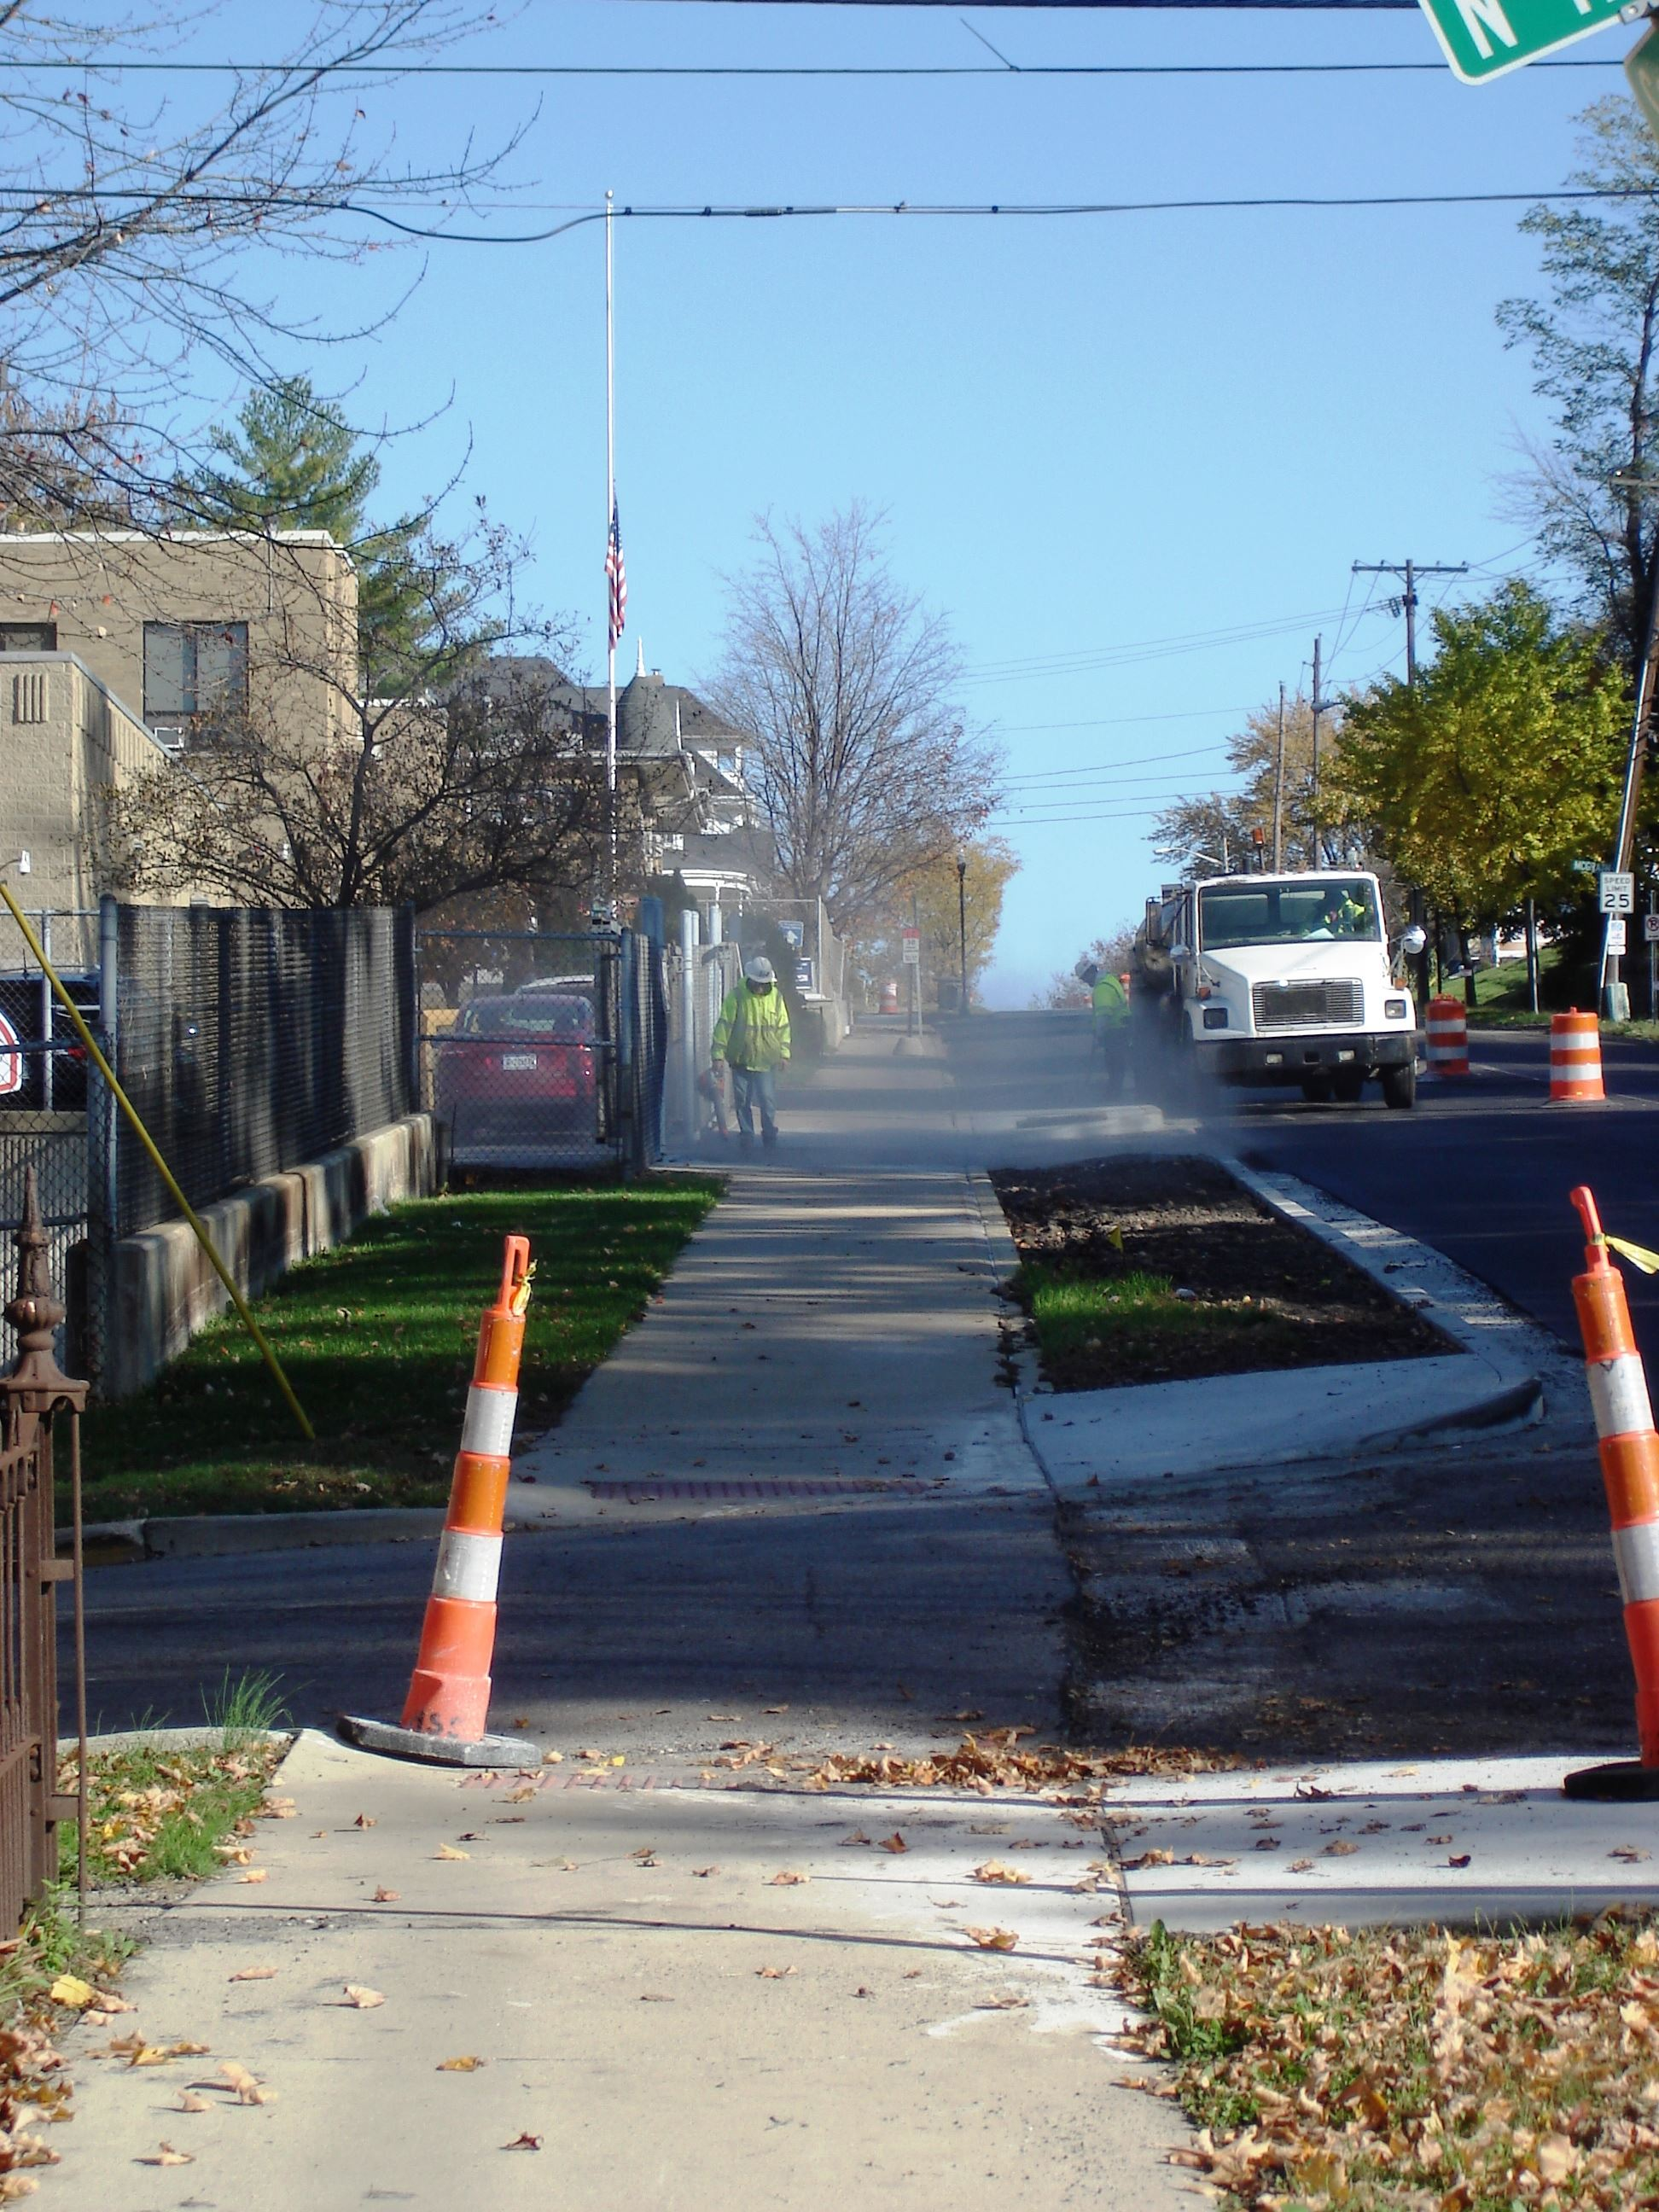 A view looking east on South Street showing curb work in the distance